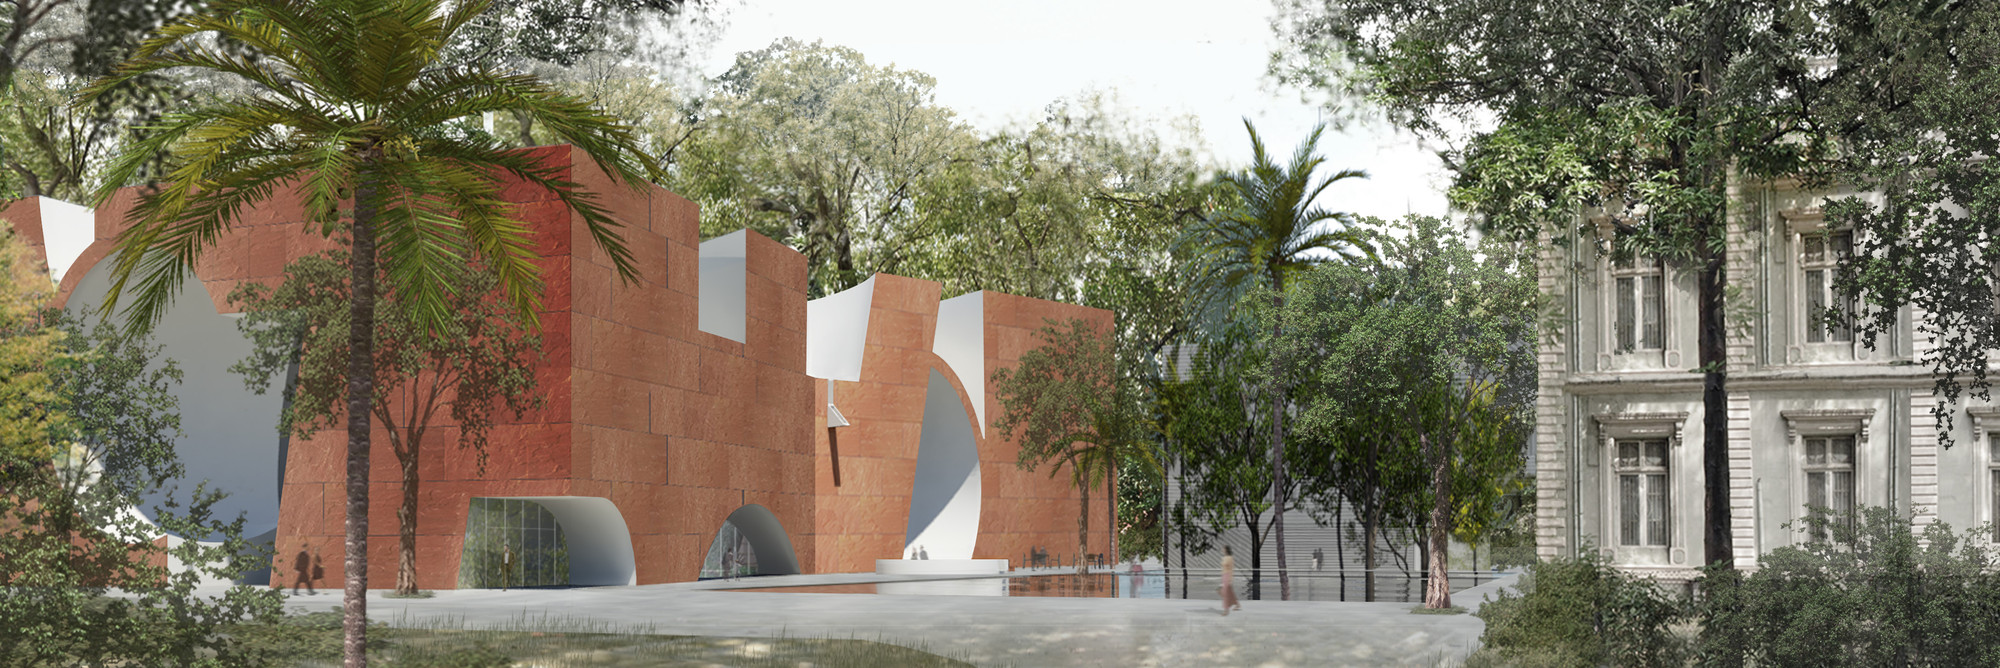 Steven Holl Selected To Design New Wing For Mumbai City Museum, Courtesy of Steven Holl Architects